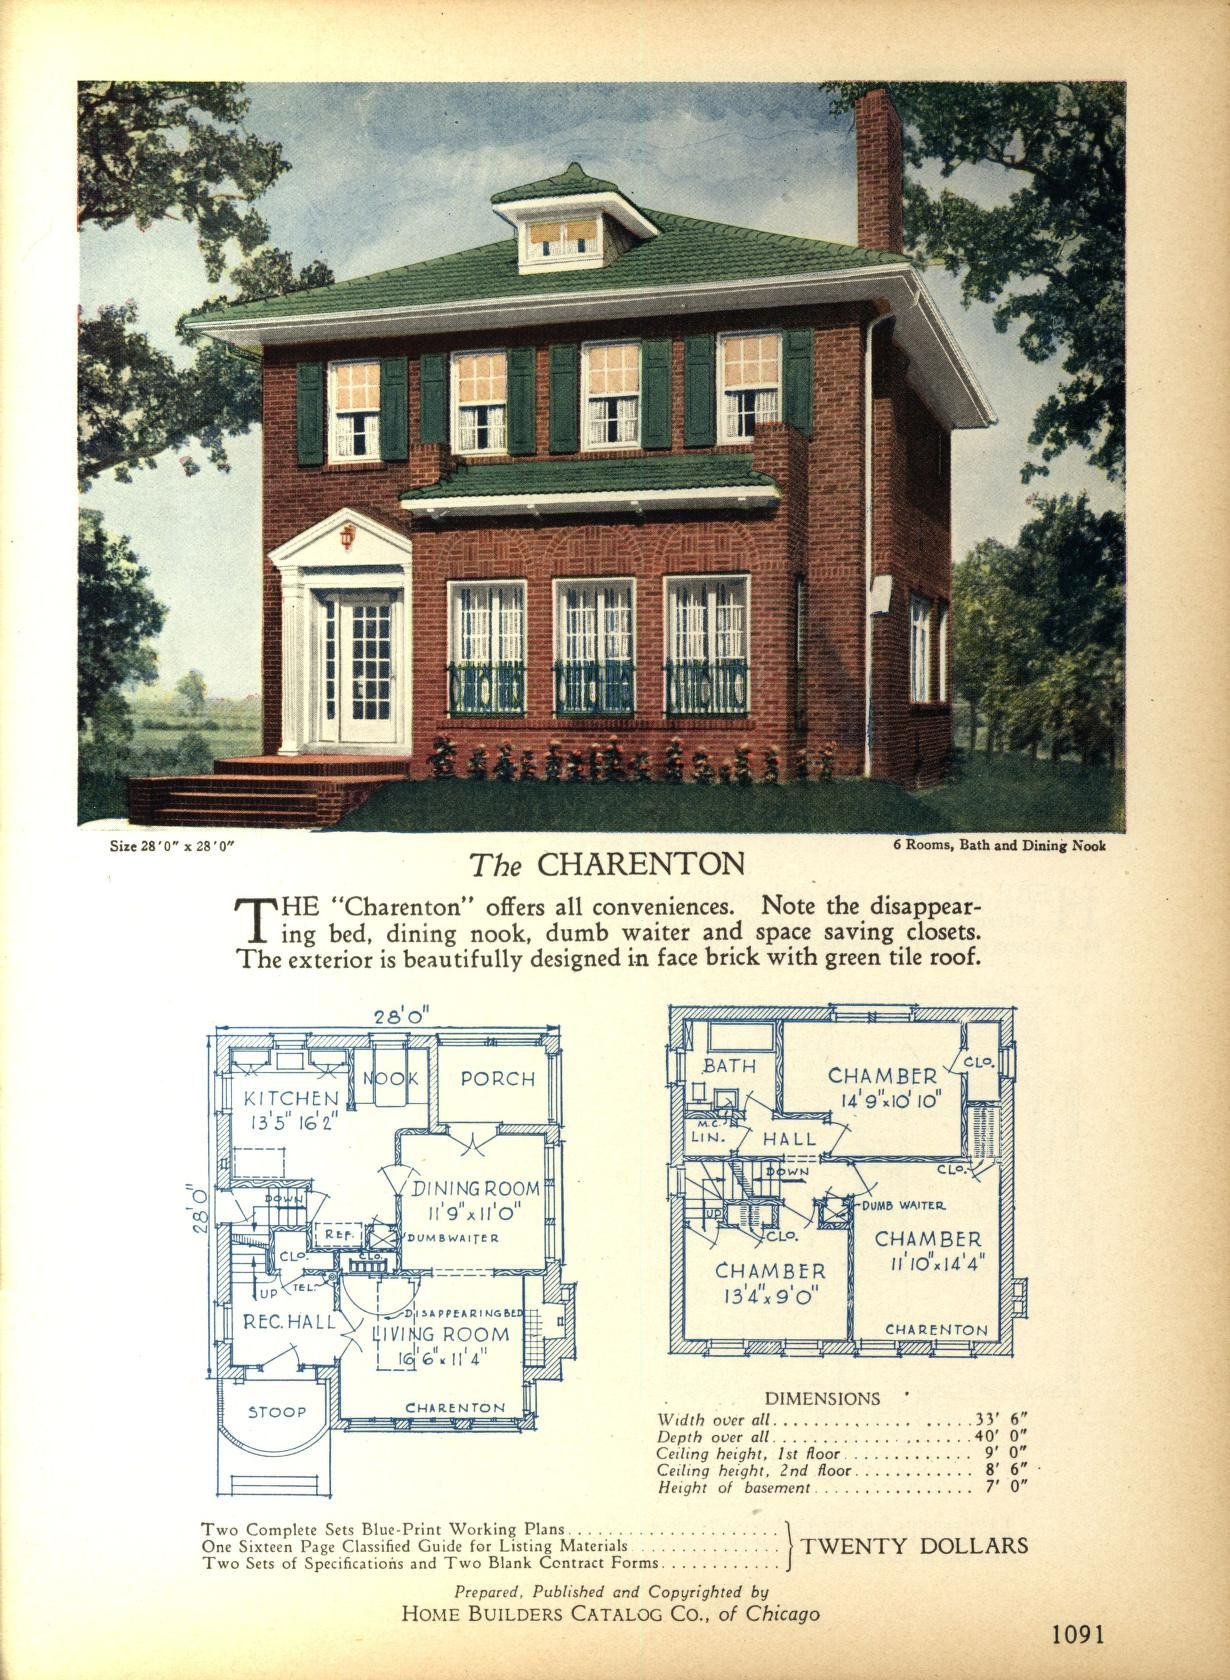 The CHARENTON   Home Builders Catalog  plans of all types of small     The CHARENTON   Home Builders Catalog  plans of all types of small homes by Home  Builders Catalog Co  Published 1928